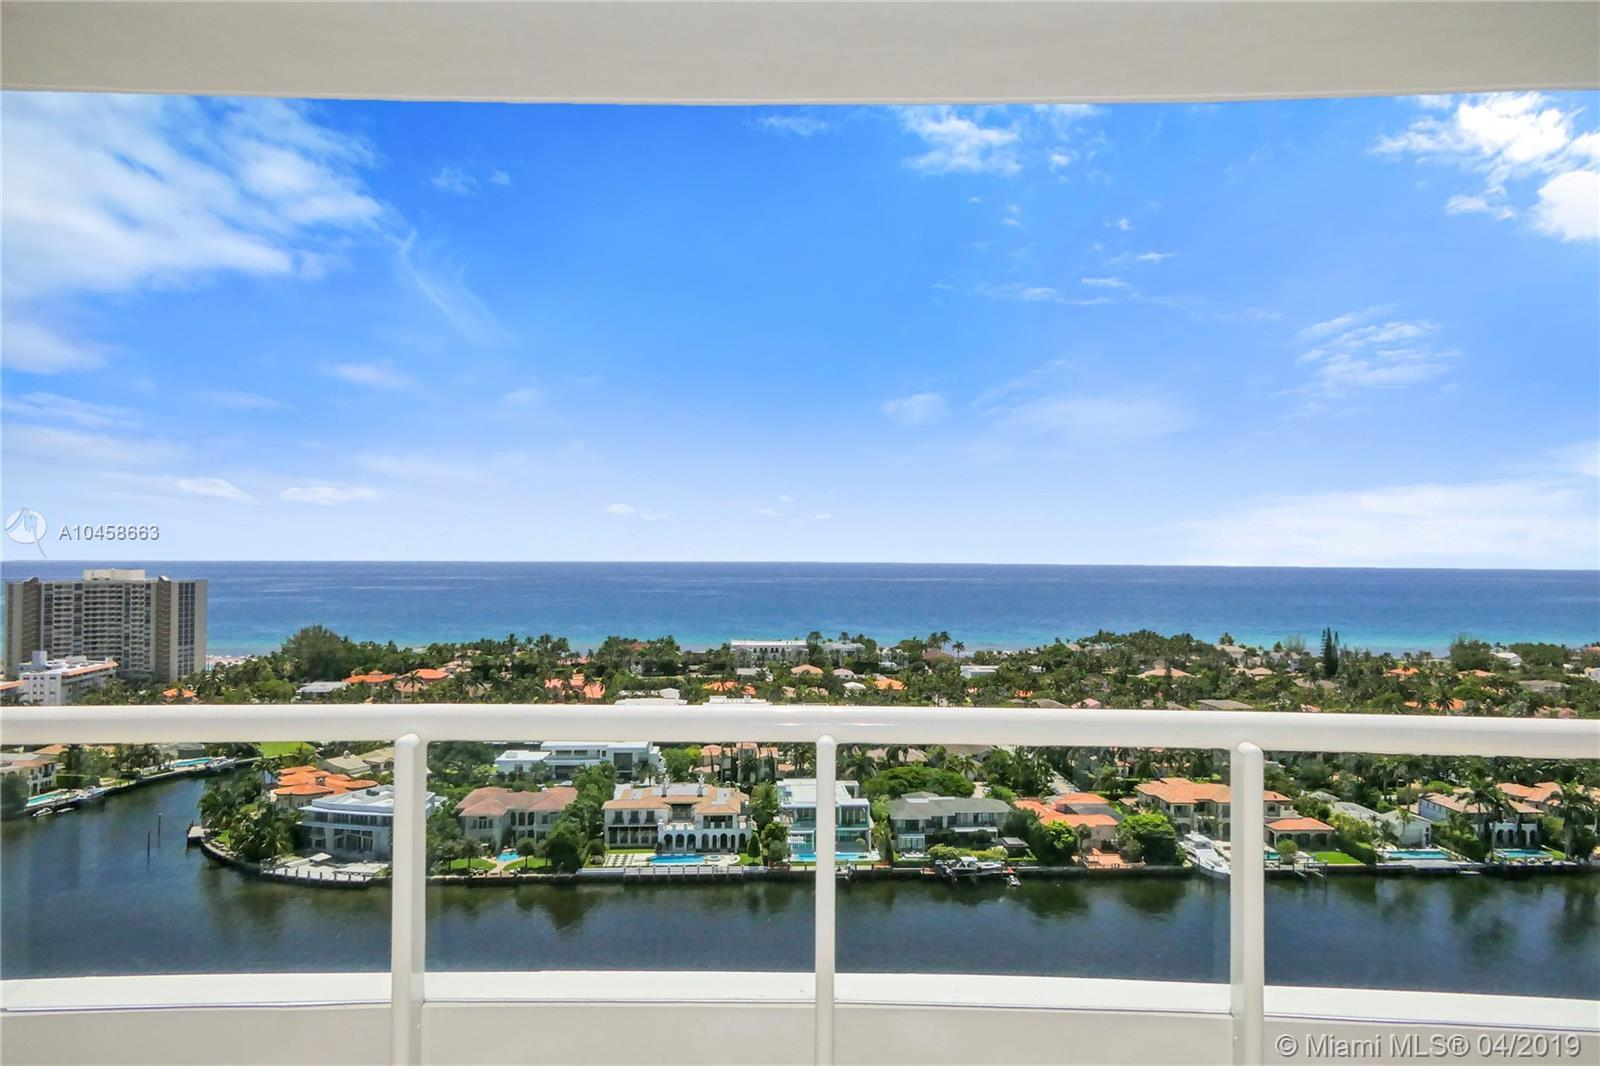 Atlantic I at the Point / Aventura / 5 Beds / 5.1 Baths (master bed has his and her bath) / 4,171 sq